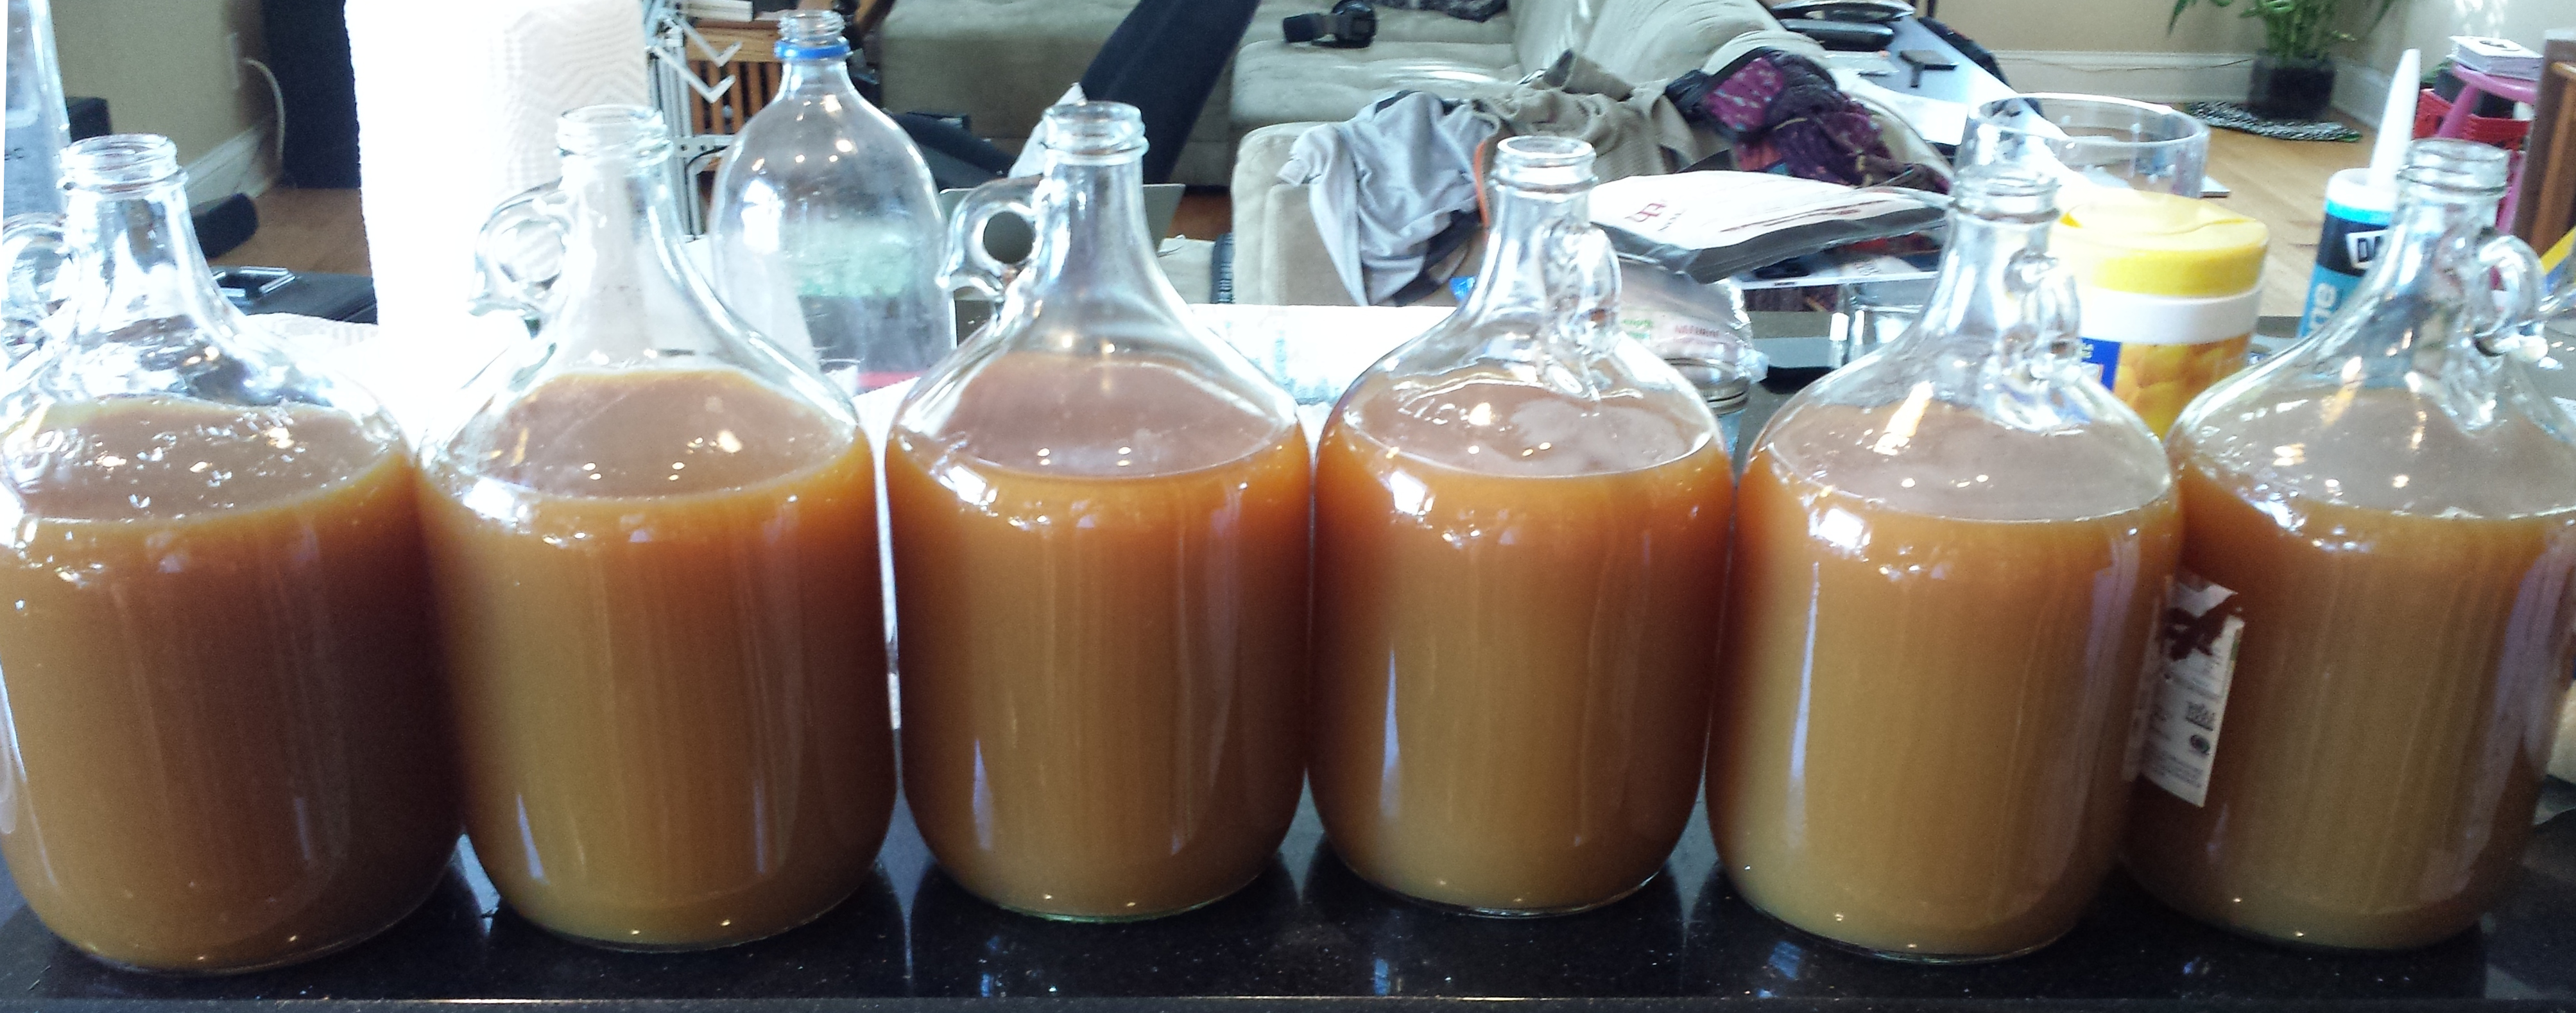 6 jugs of cider